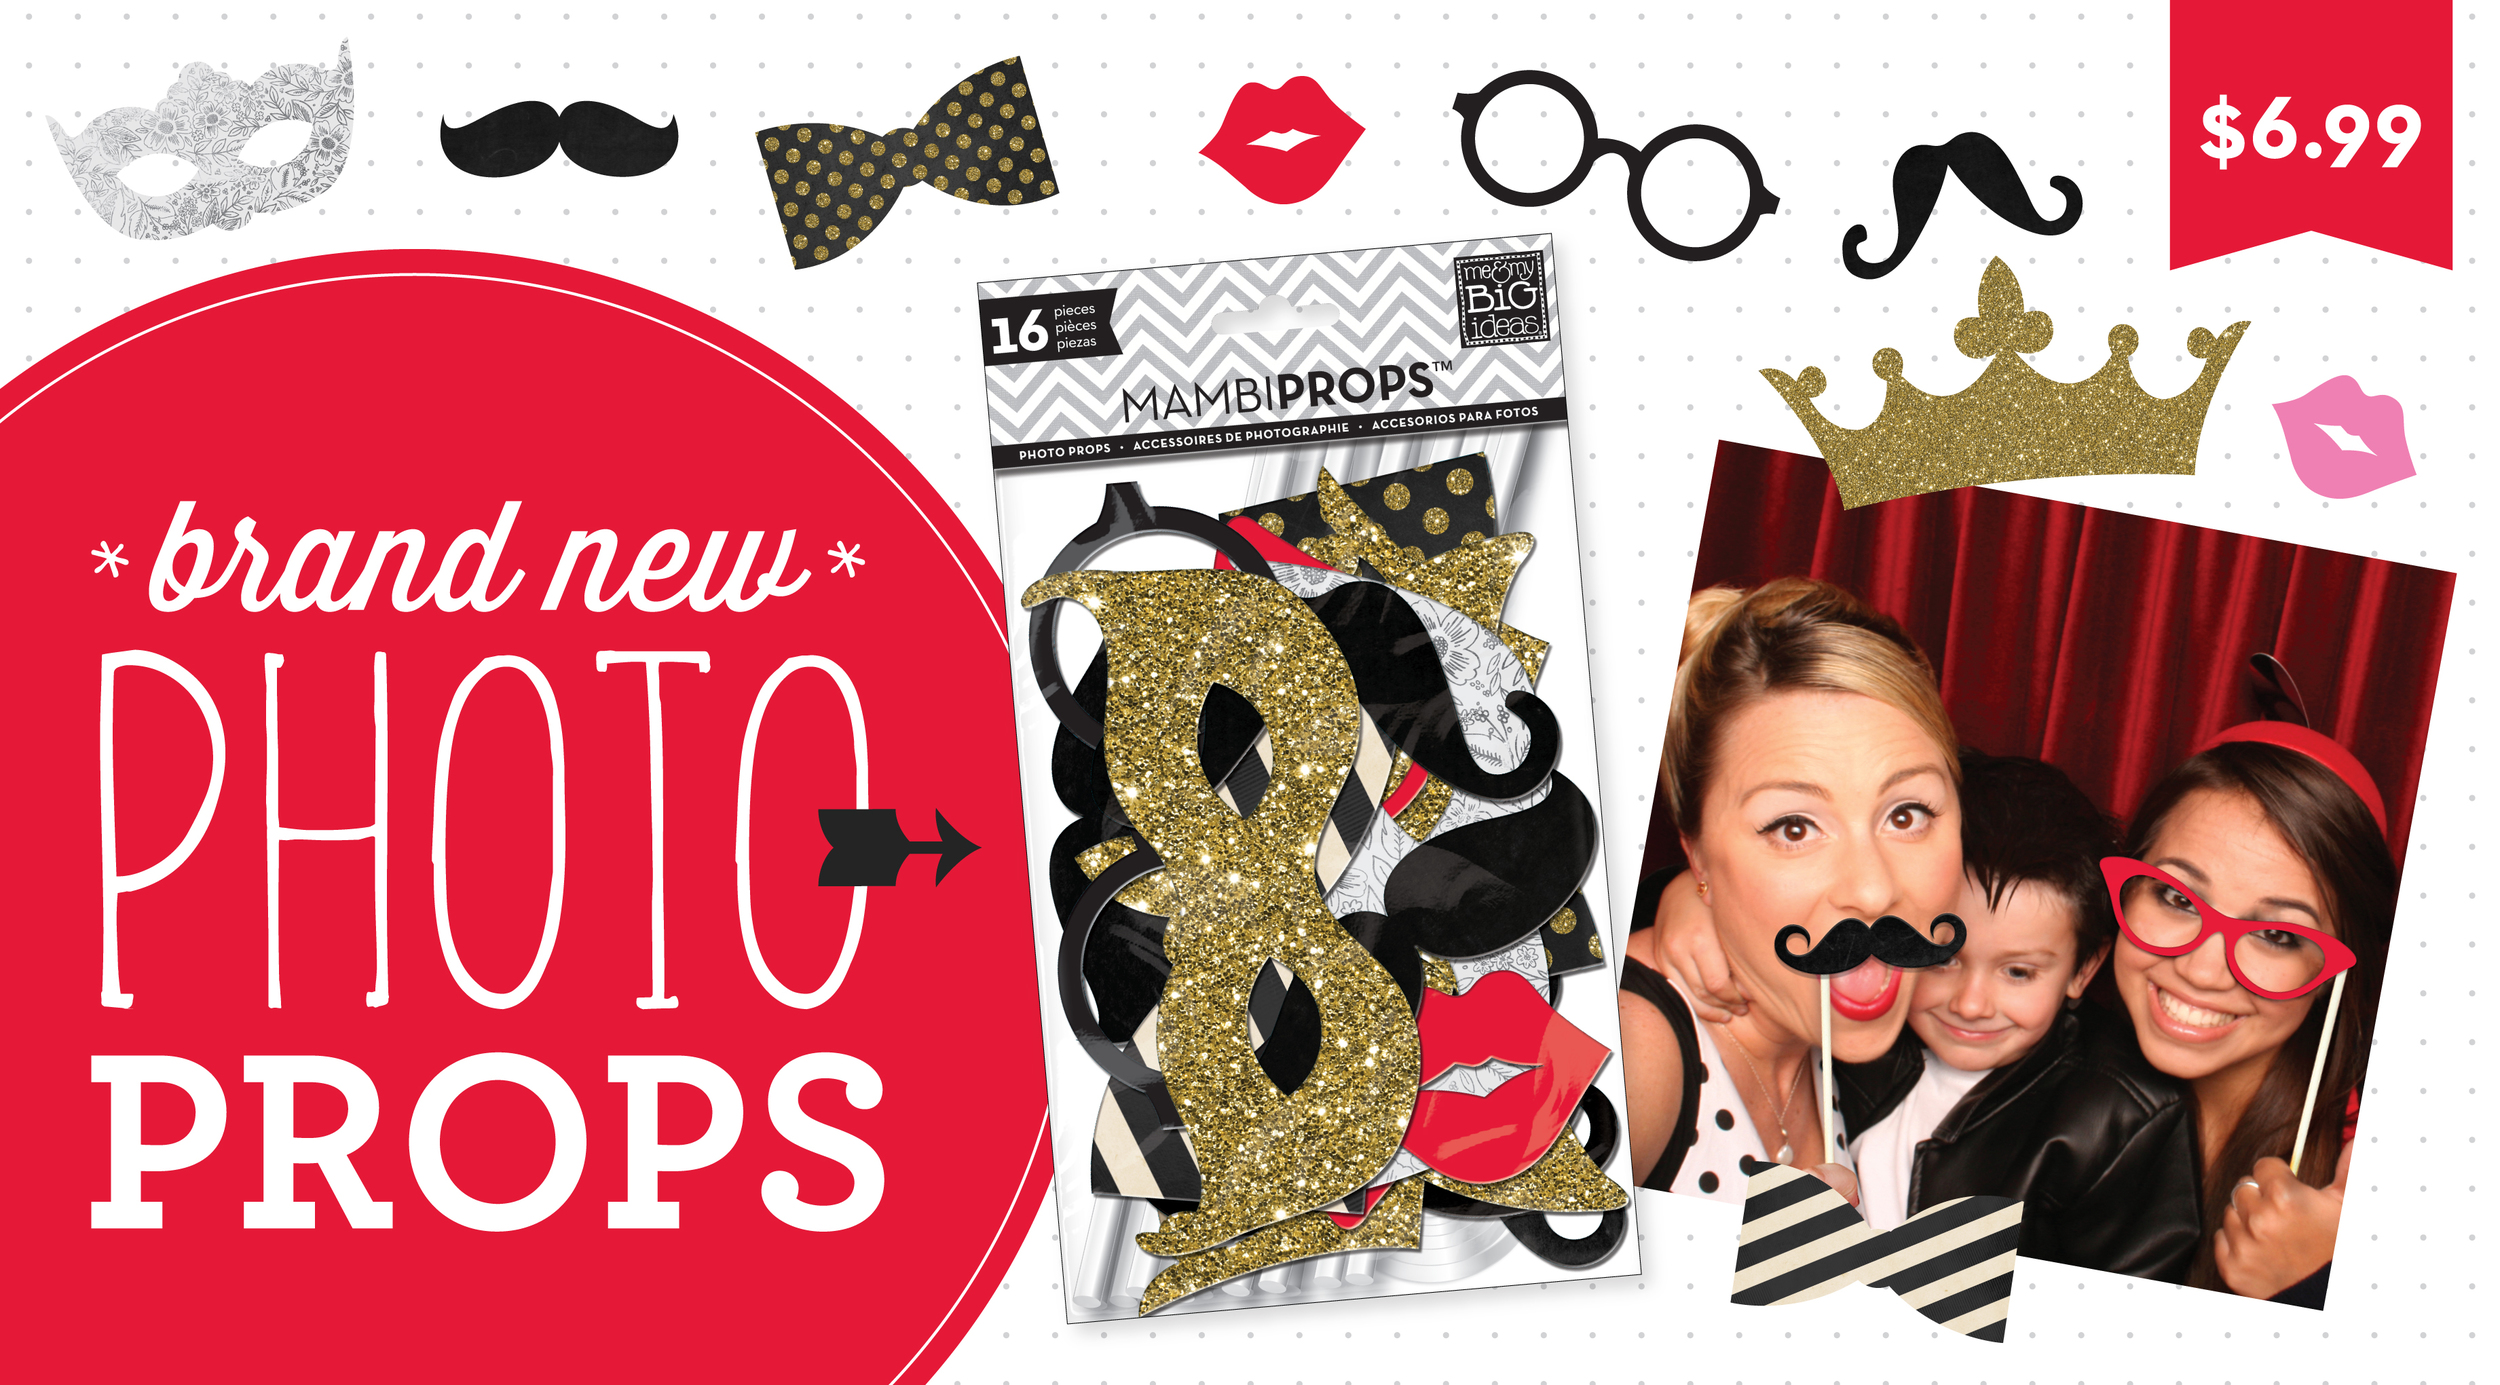 4th of July Sale in the mambiSHOP and free stickers with purchase.  BRAND NEW DIY photo booth props in the shop!  Great for weddings or parties.